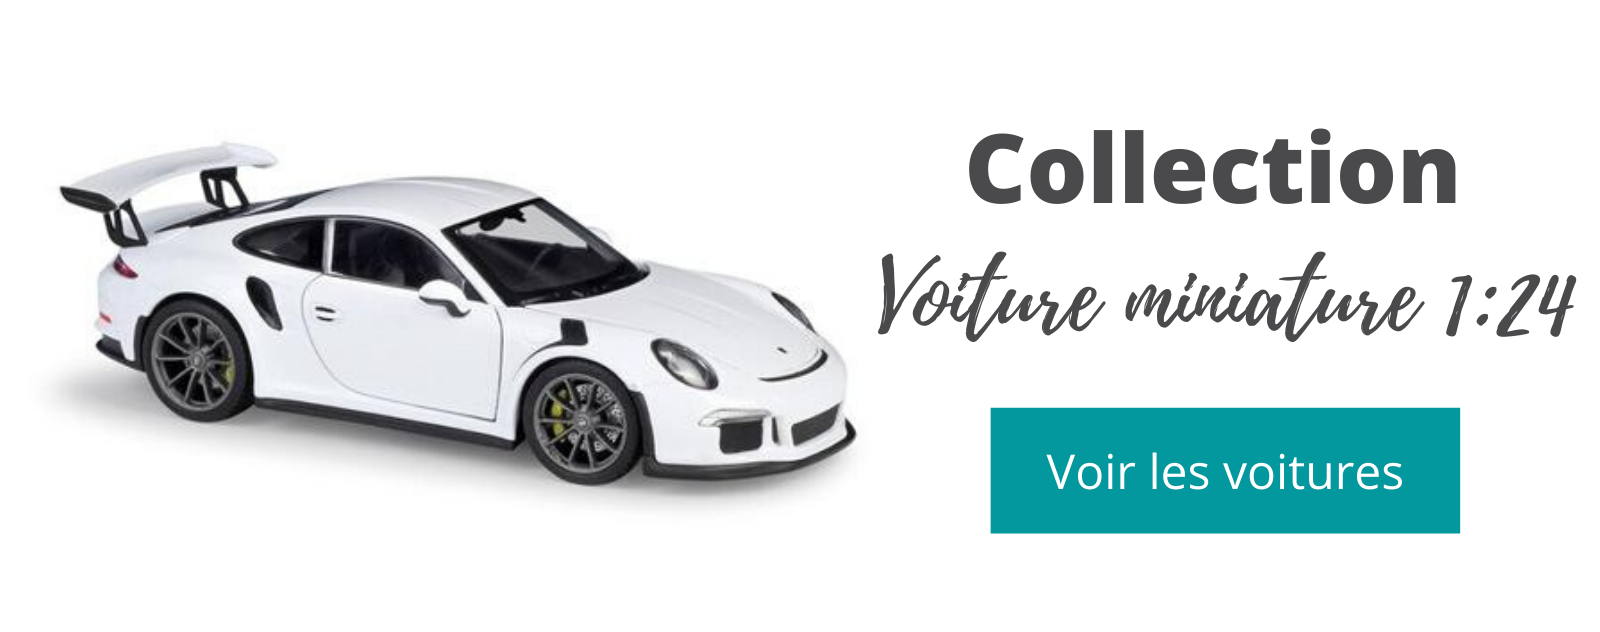 collection-voiture-miniature-1:24